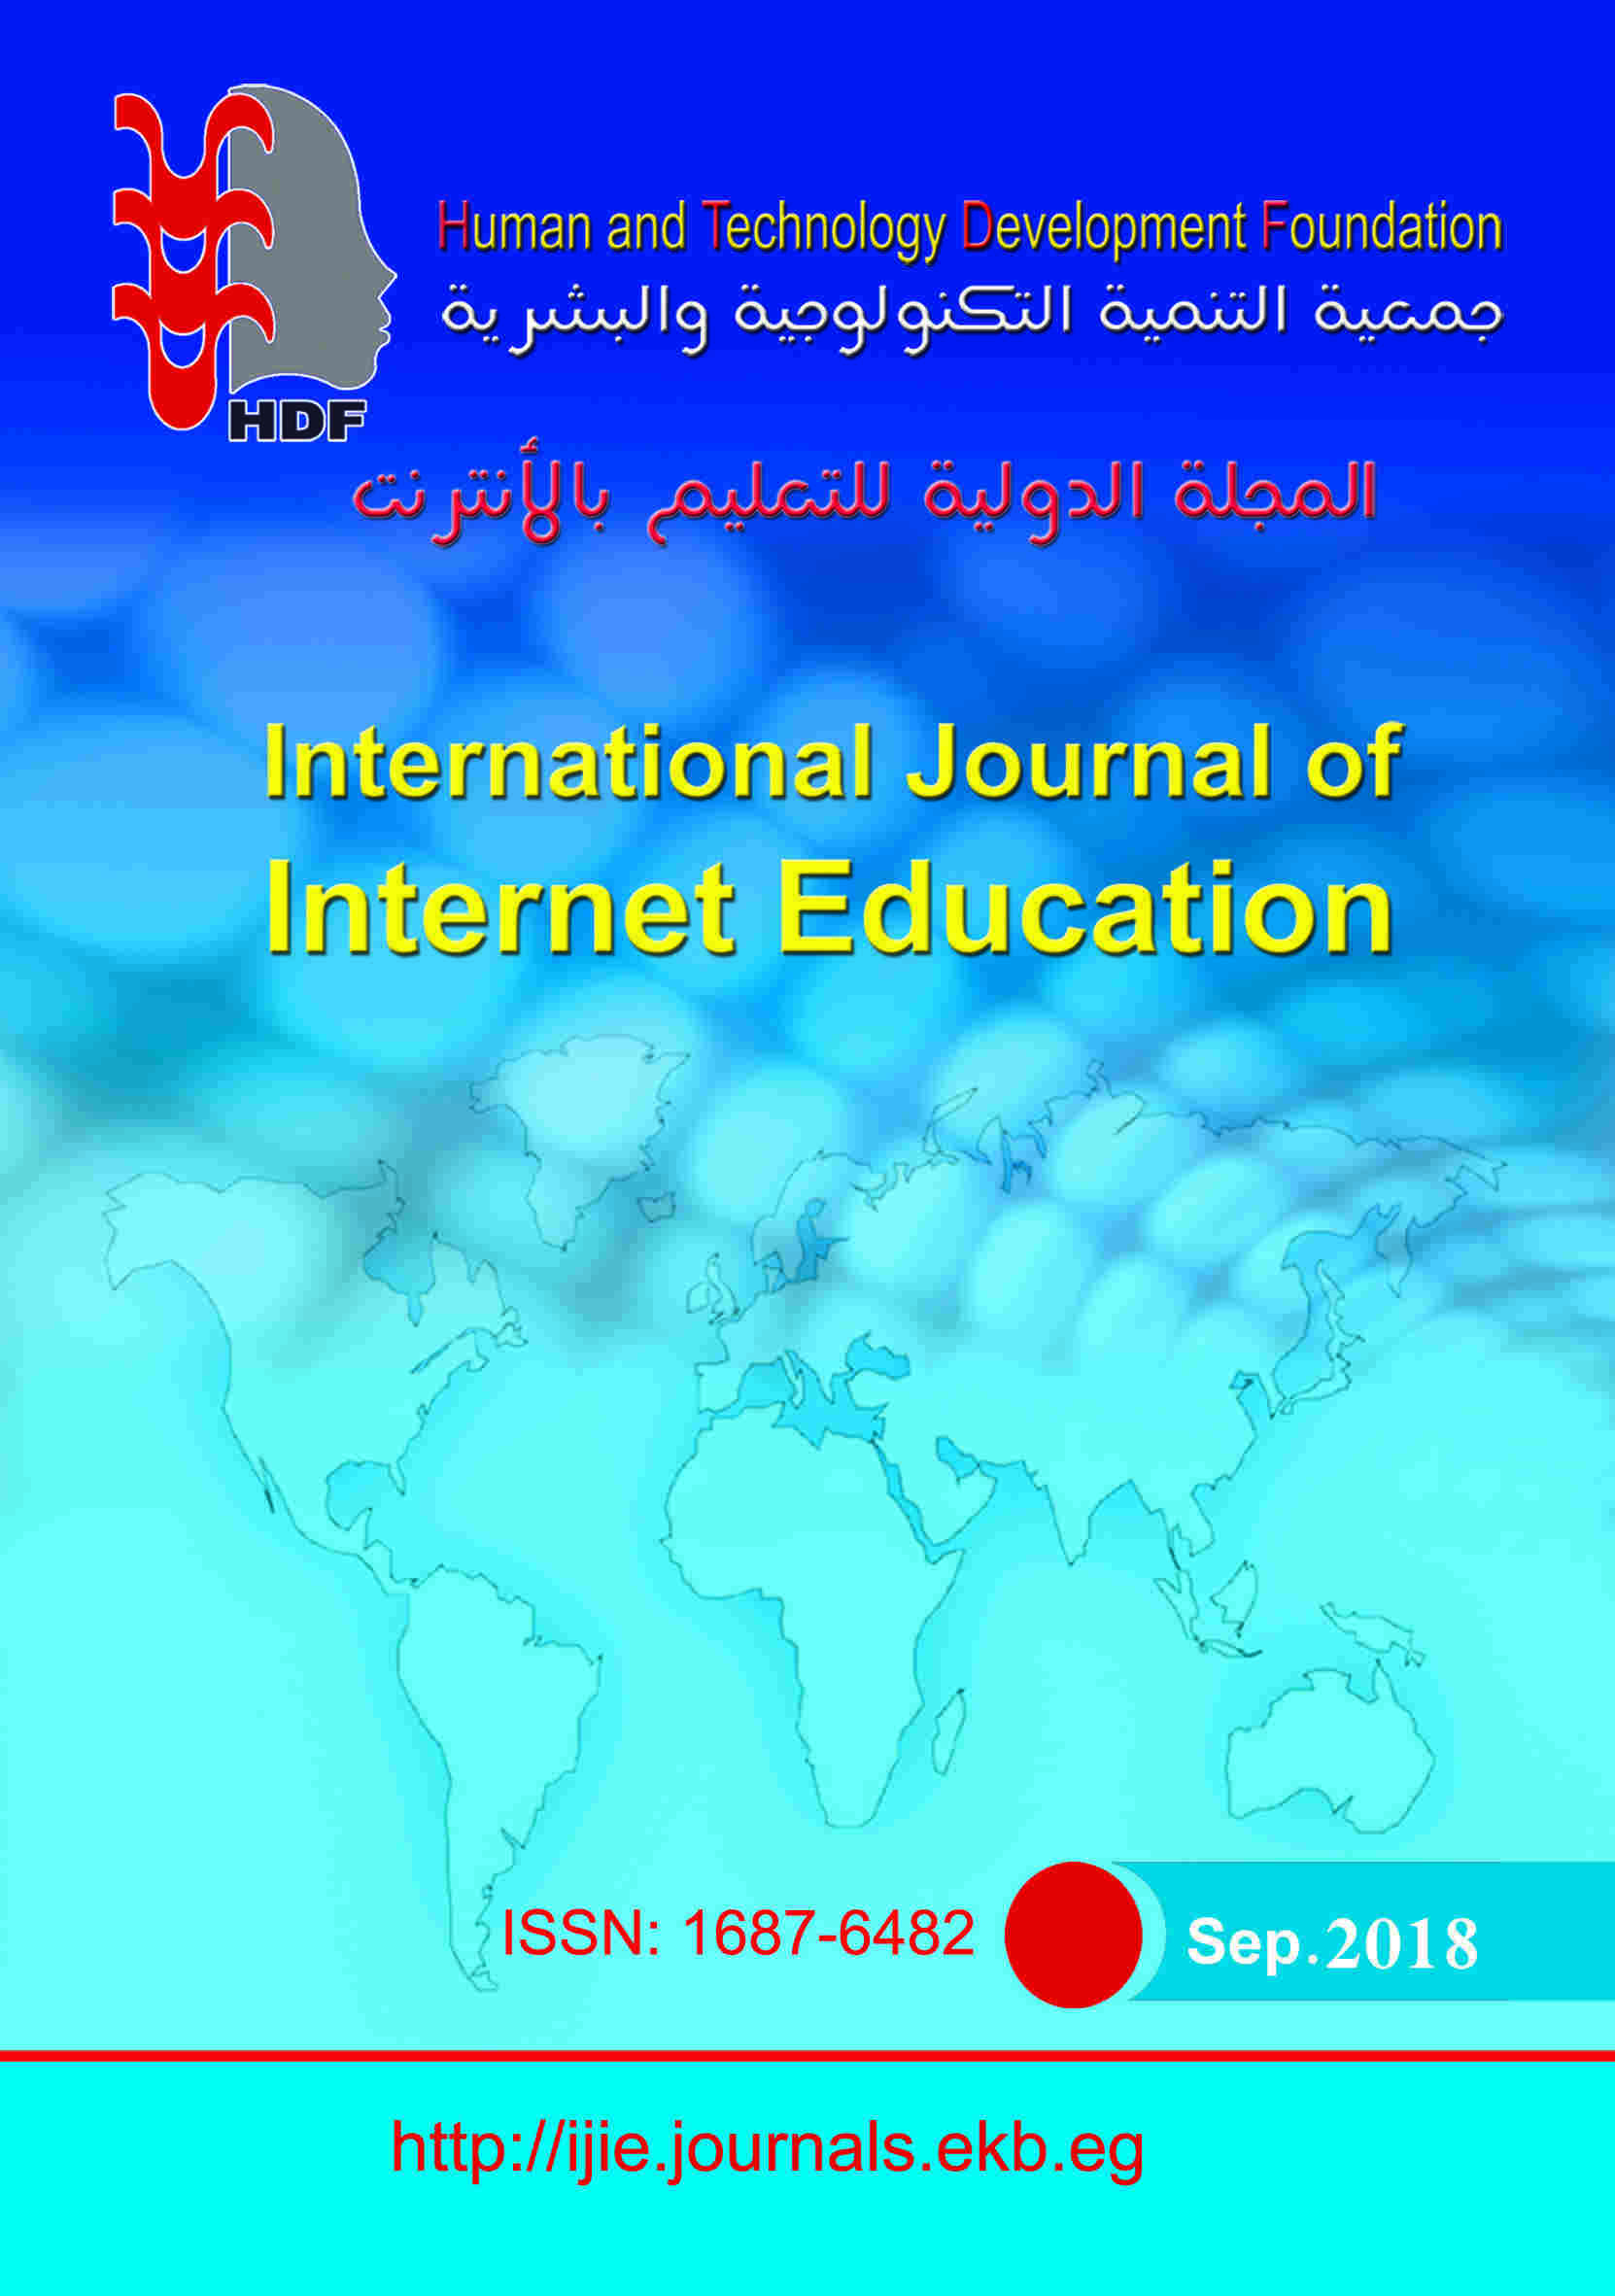 International Journal of Internet Education